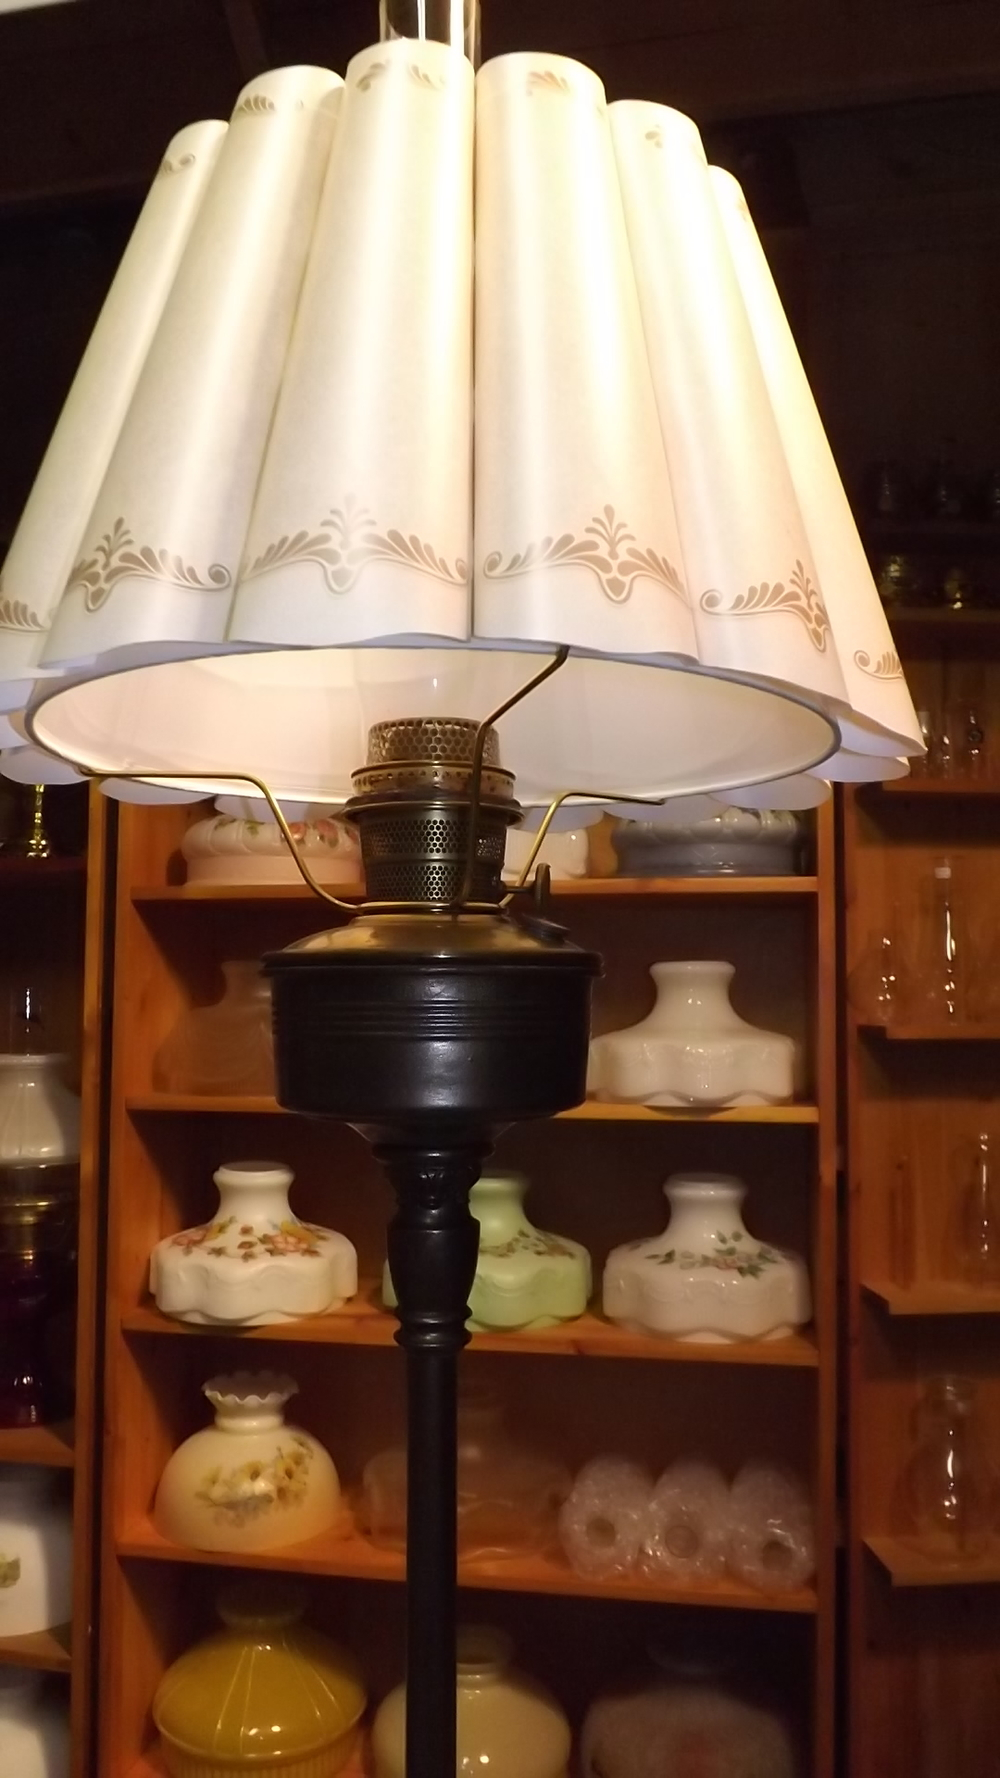 Antique floor lamps antique kerosene lighting 1934 model b 1258 bronze refinished new shade optional other shades available aloadofball Gallery